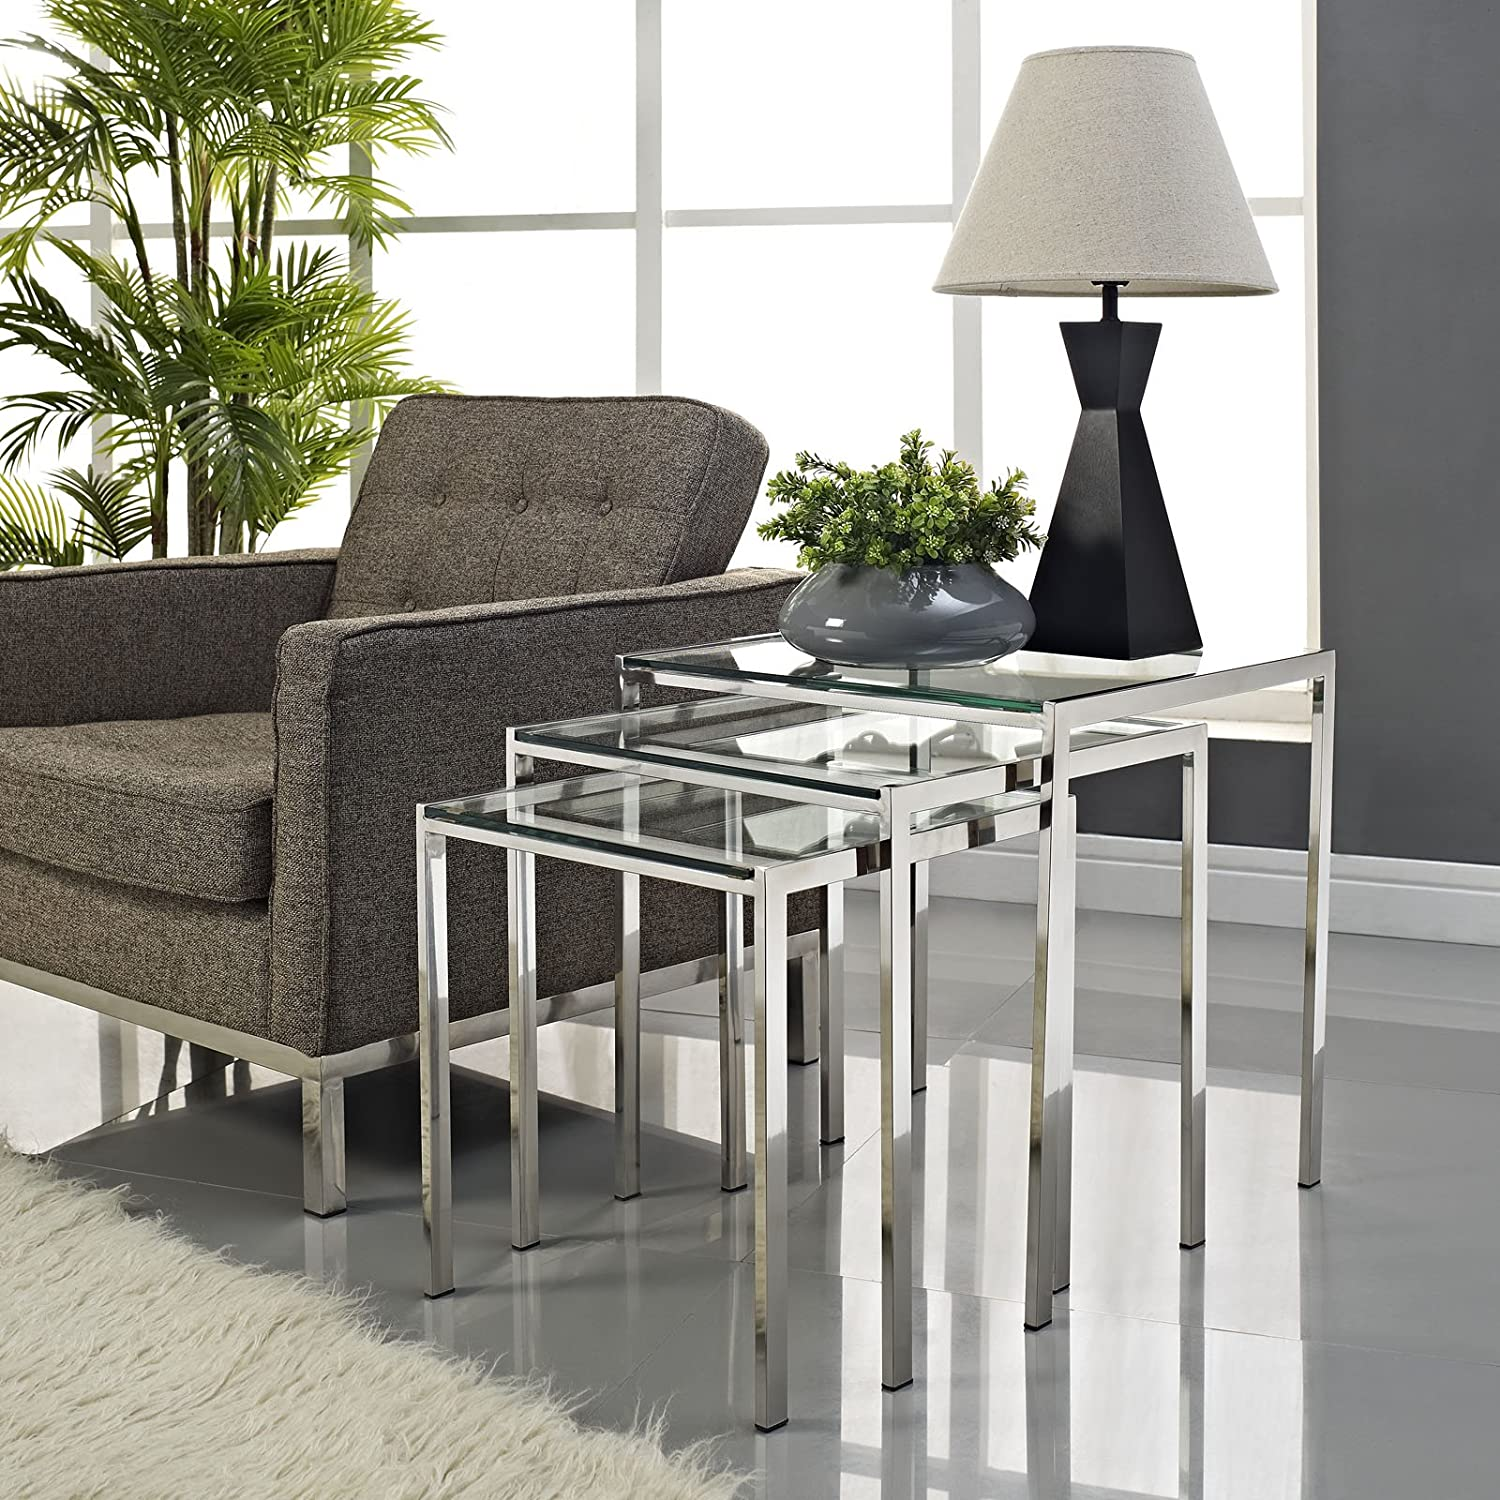 Amazon Modway Nimble Stainless Steel Nesting Table Set